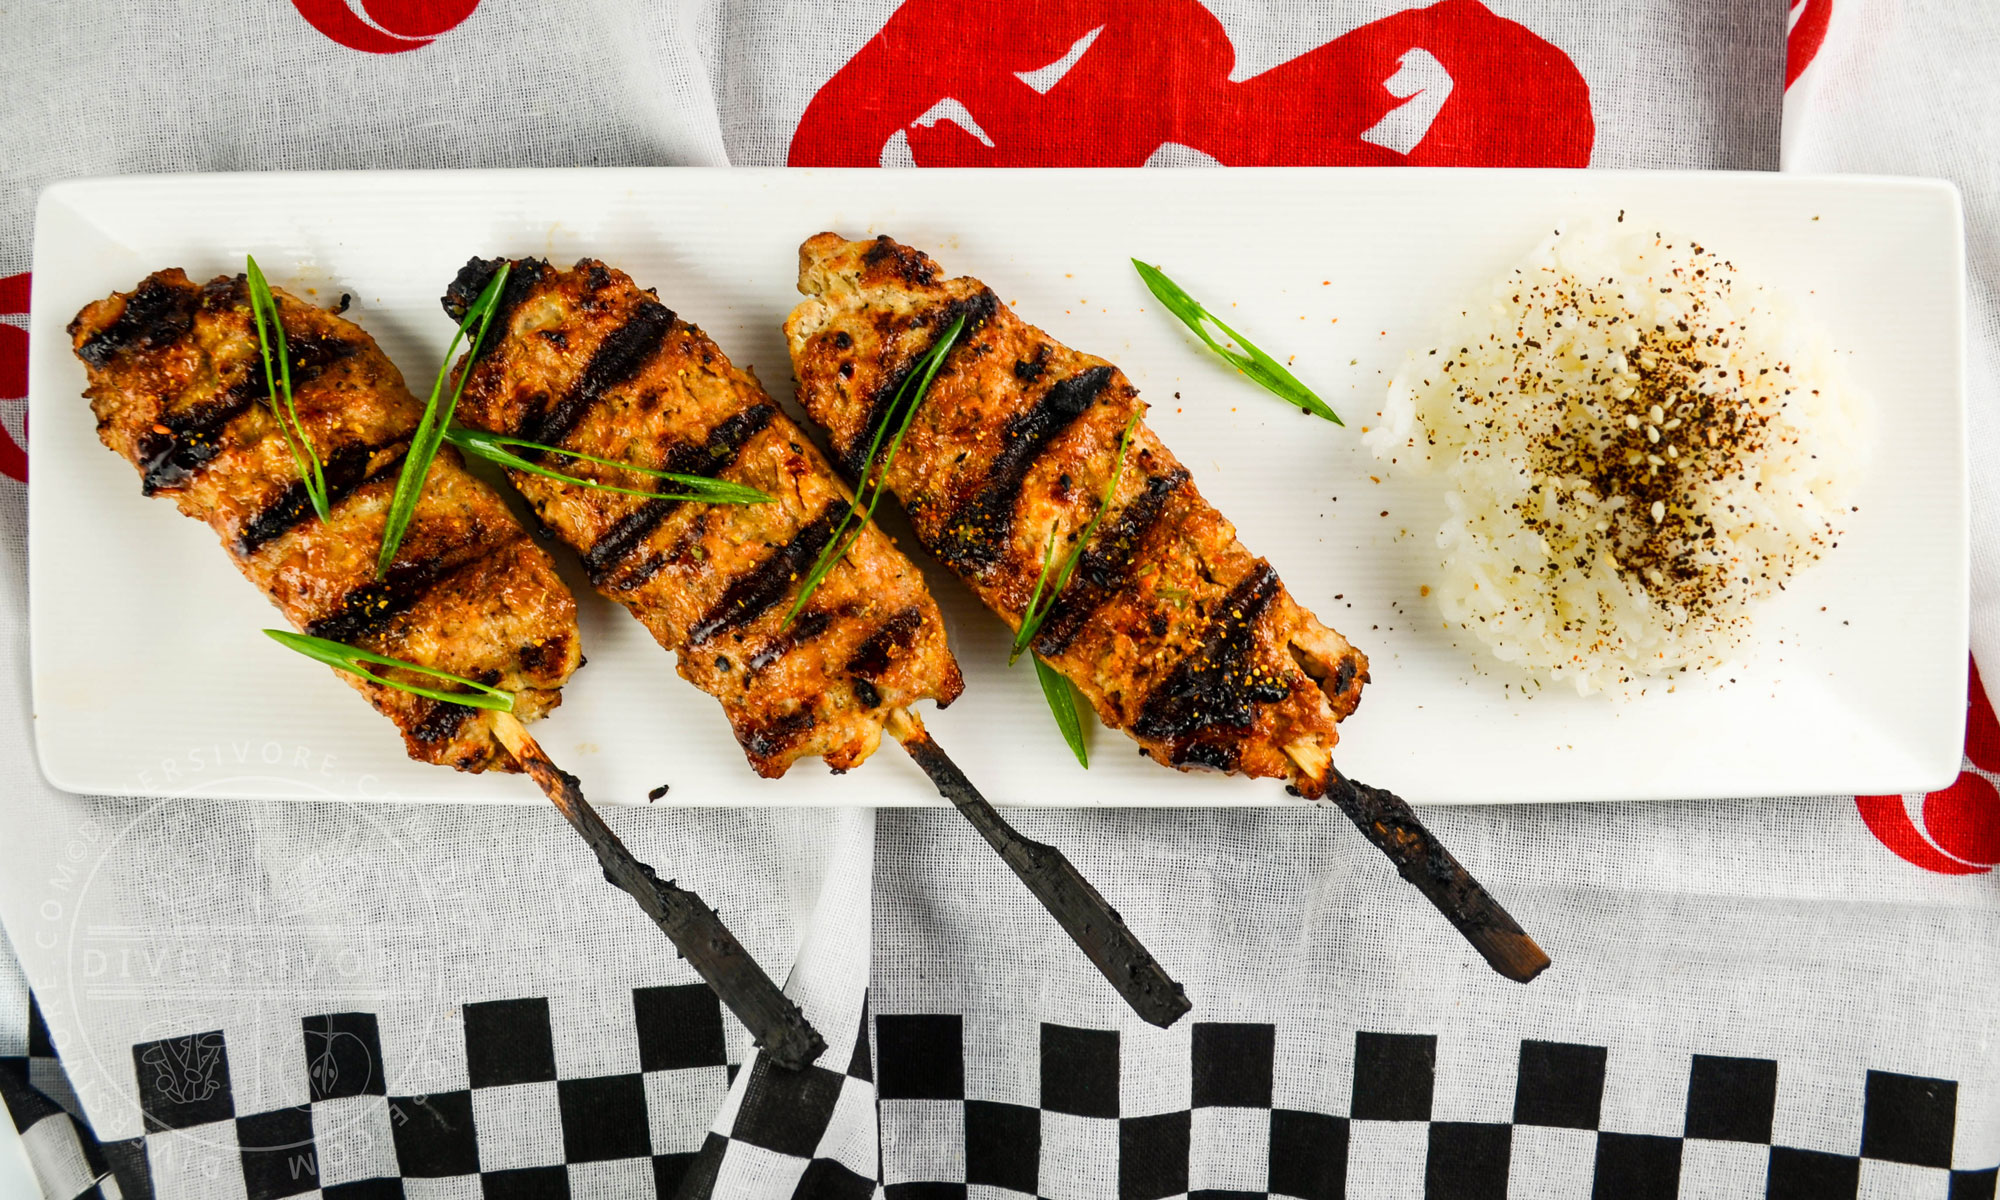 Allergy-friendly Chicken Tsukune (Japanese chicken meatball skewers) made without wheat, dairy, or eggs - Diversivore.com